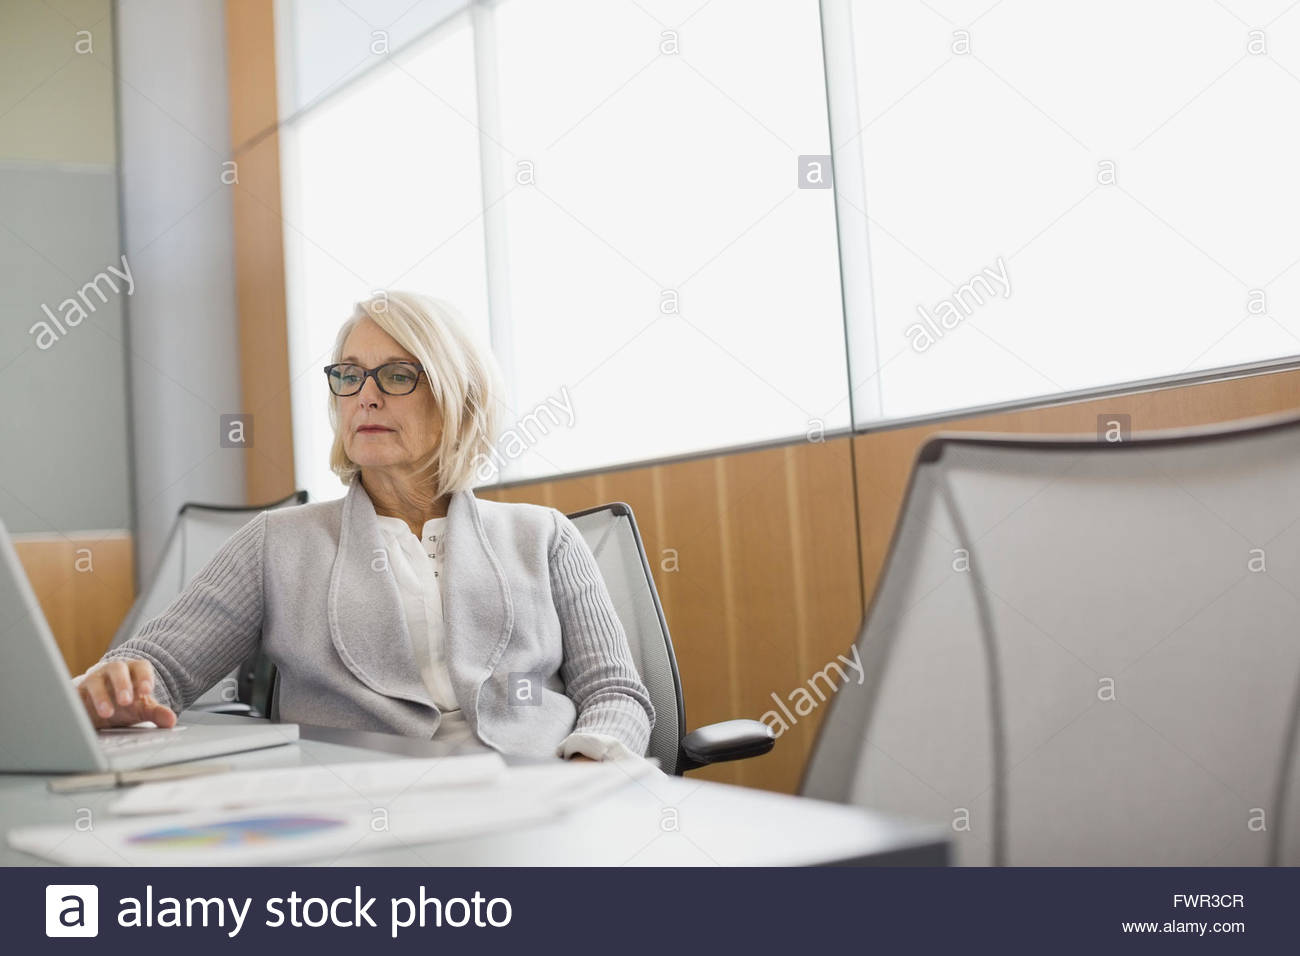 Businesswoman working on laptop in boardroom - Stock Image